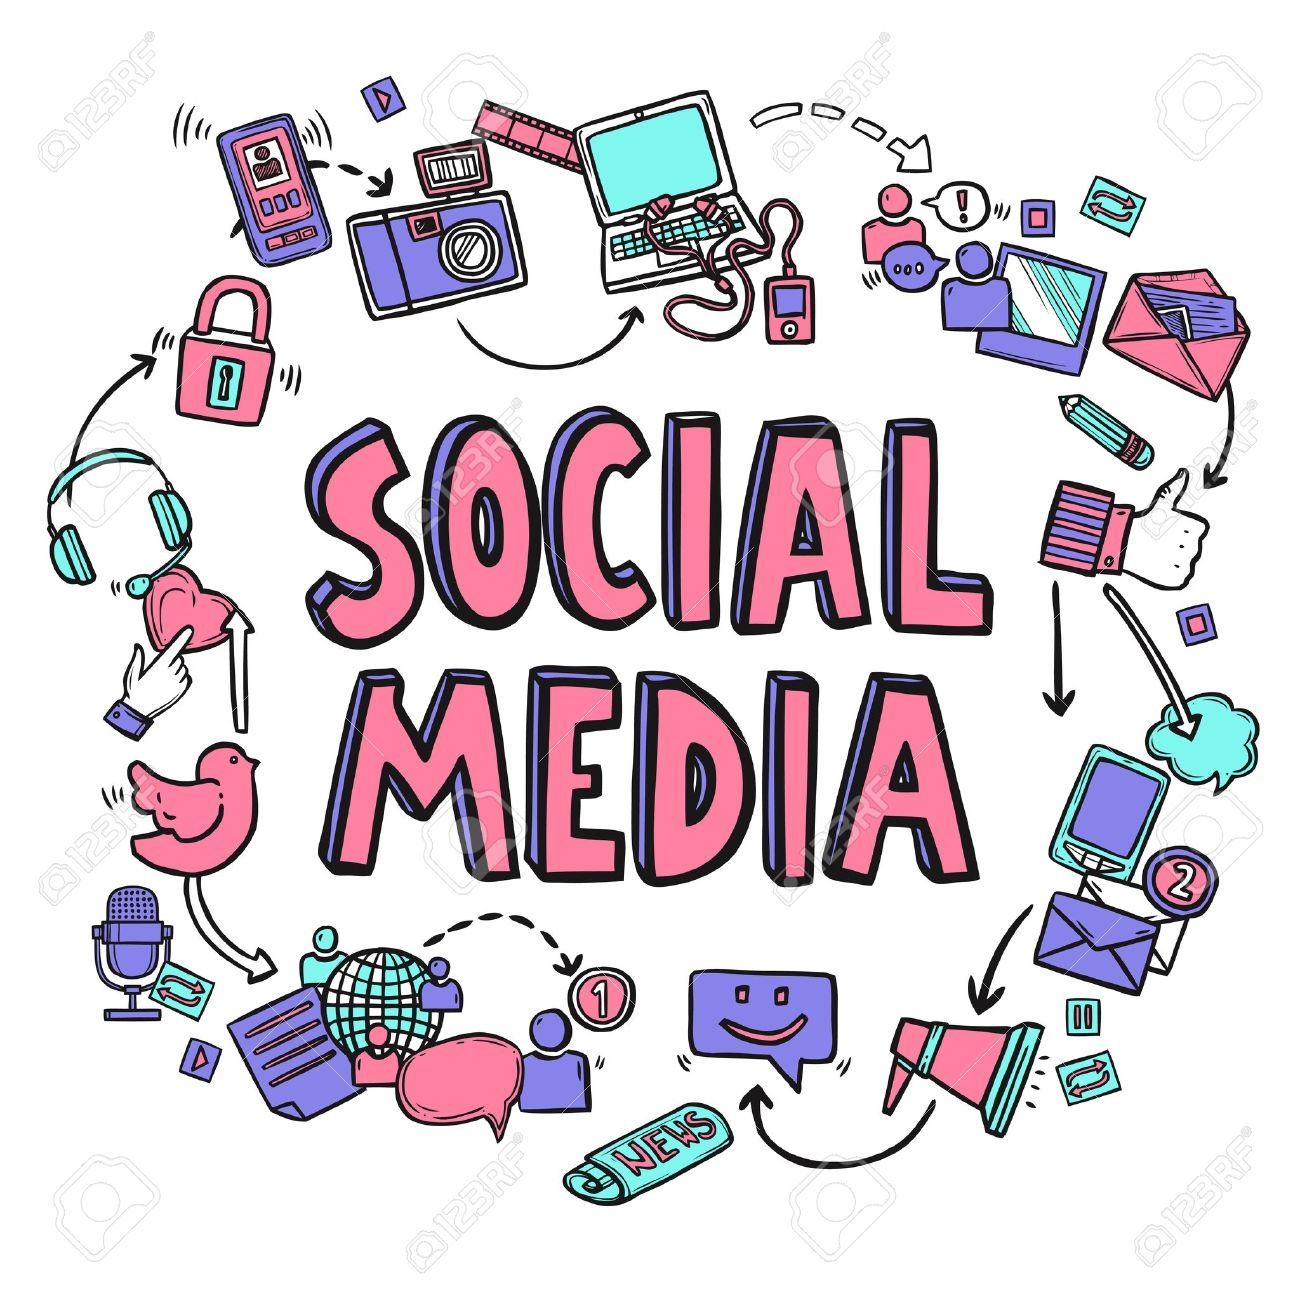 social media clipart - 15 - b - Social Media Design Concept With Hand Drawn  Conversation